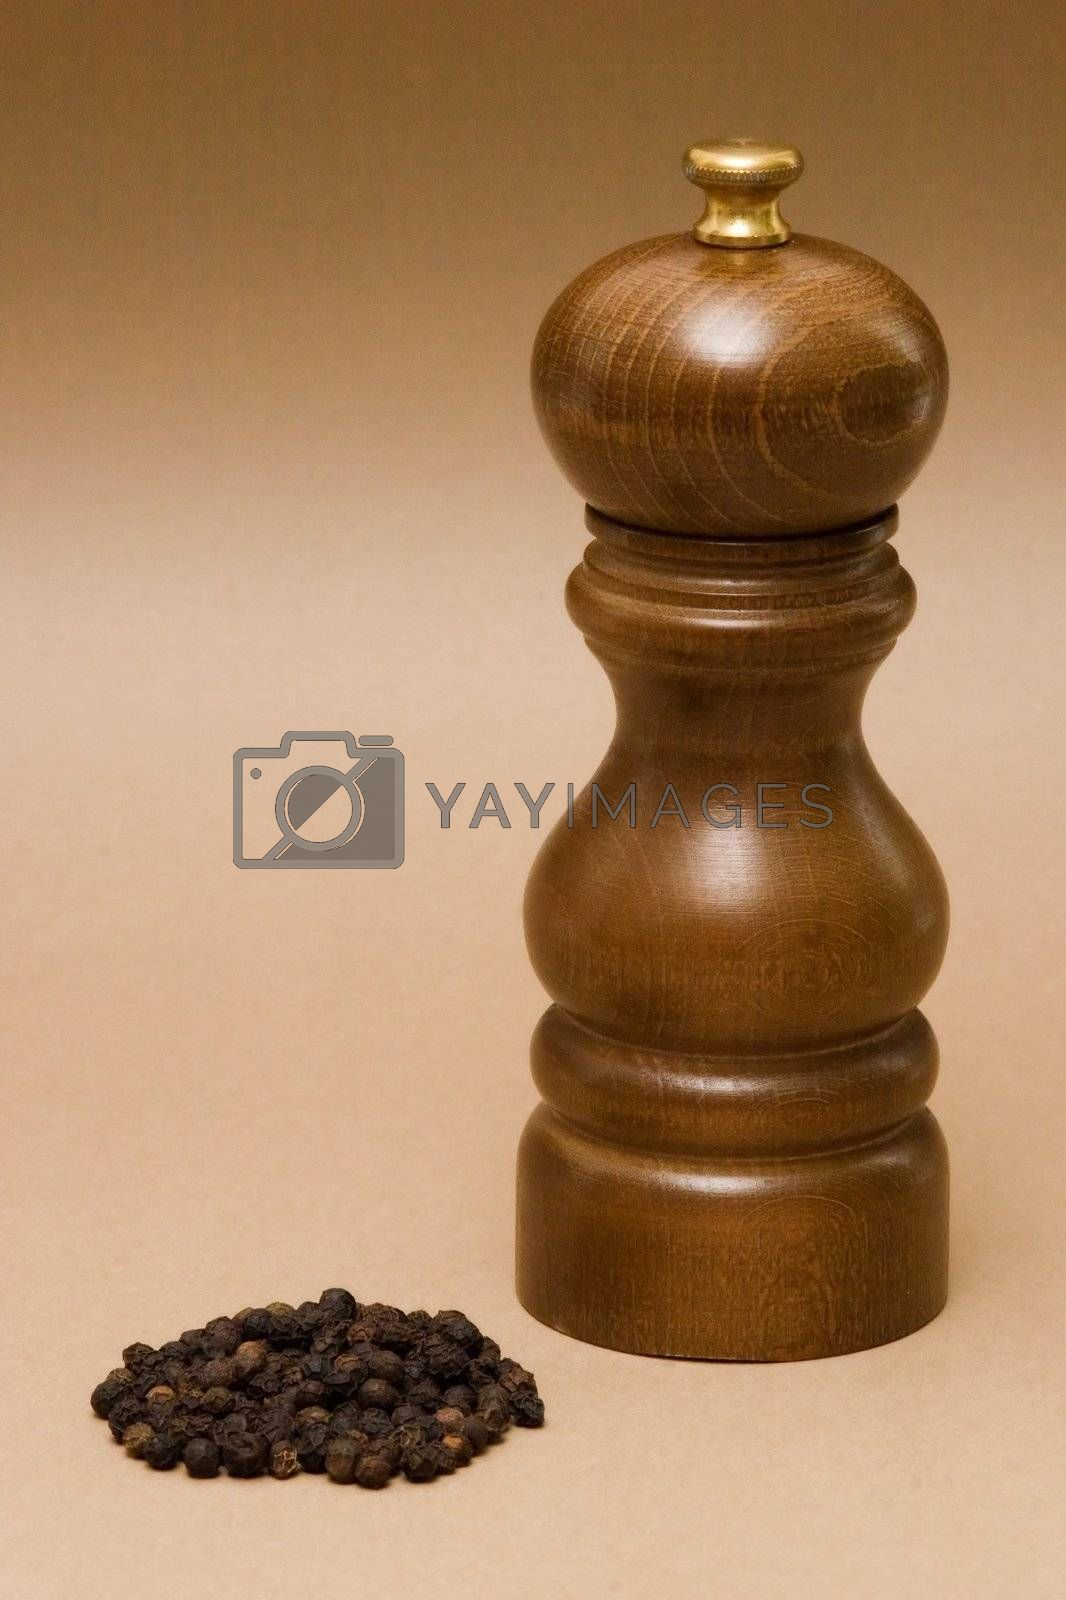 Peppermill and black pepper grains